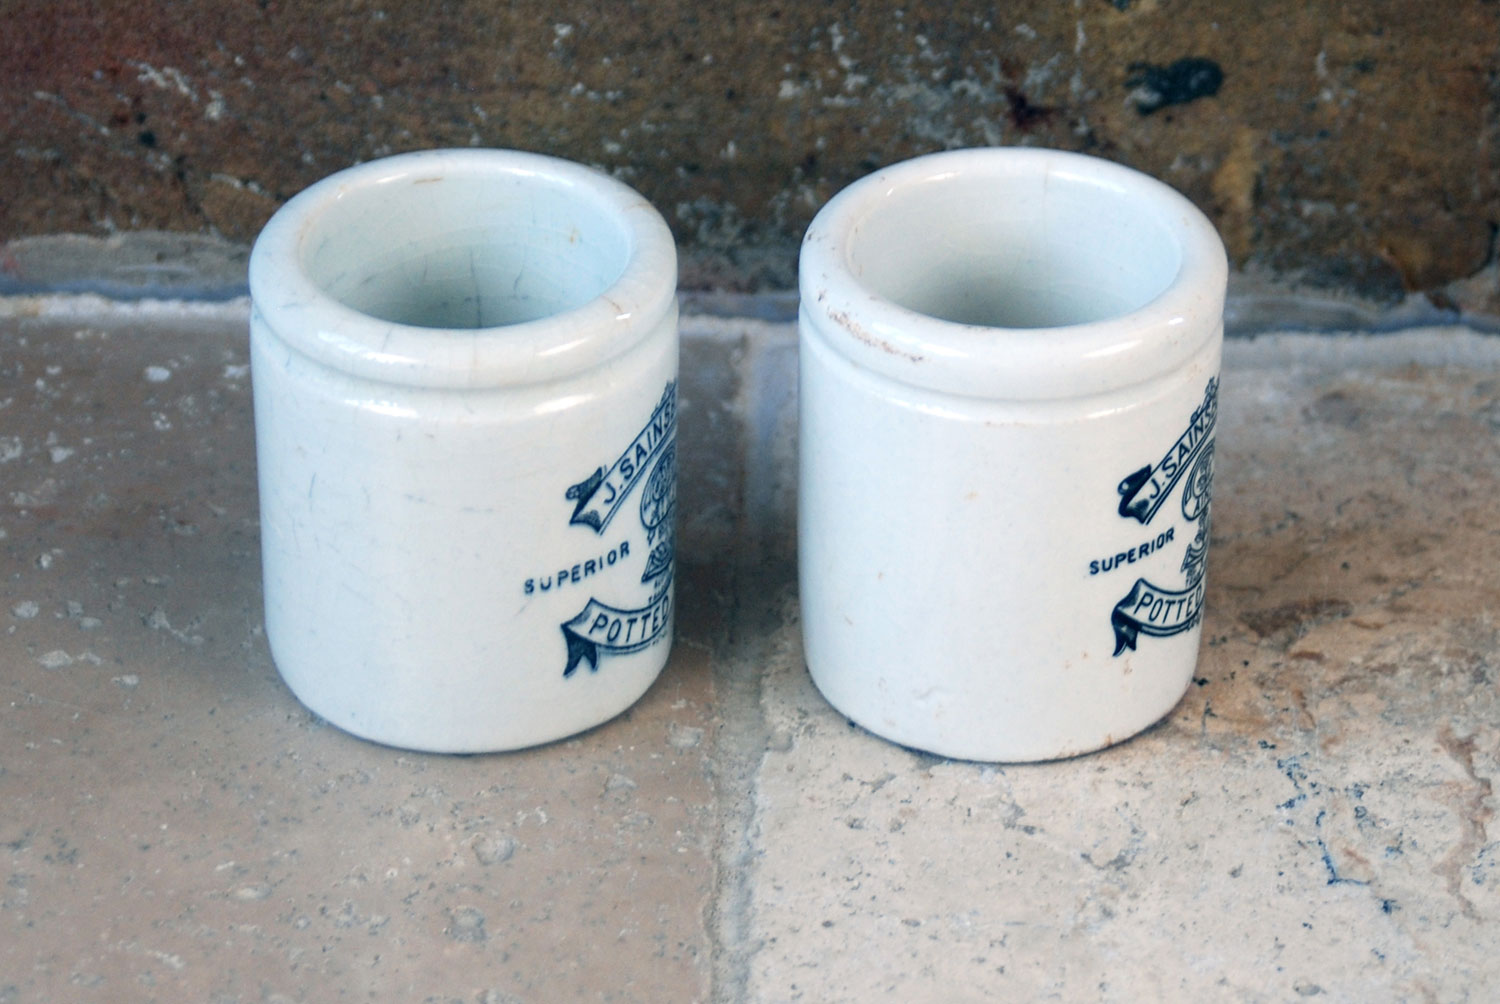 victorian antique english white ceramic ironstone packaging j sainsbury potted meat